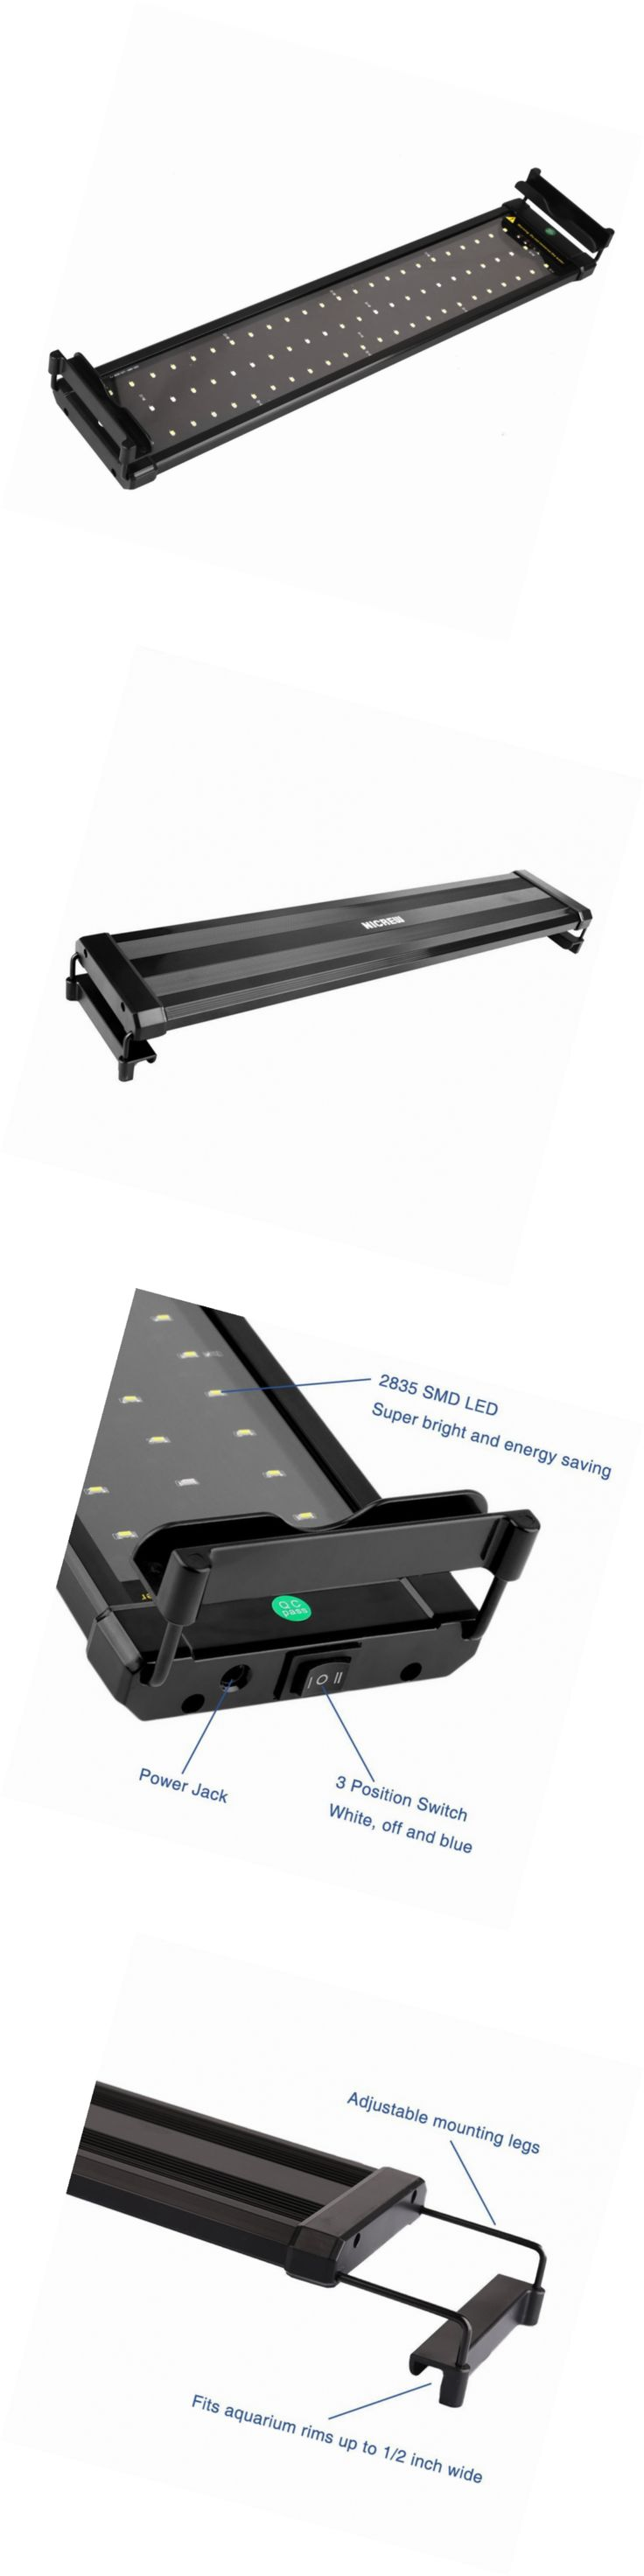 Bl system how many fish in a 55 aquaponics tank info - Lighting And Bulbs 46314 Nicrew Led Aquarium Light Fish Tank Light With Extendable Brackets